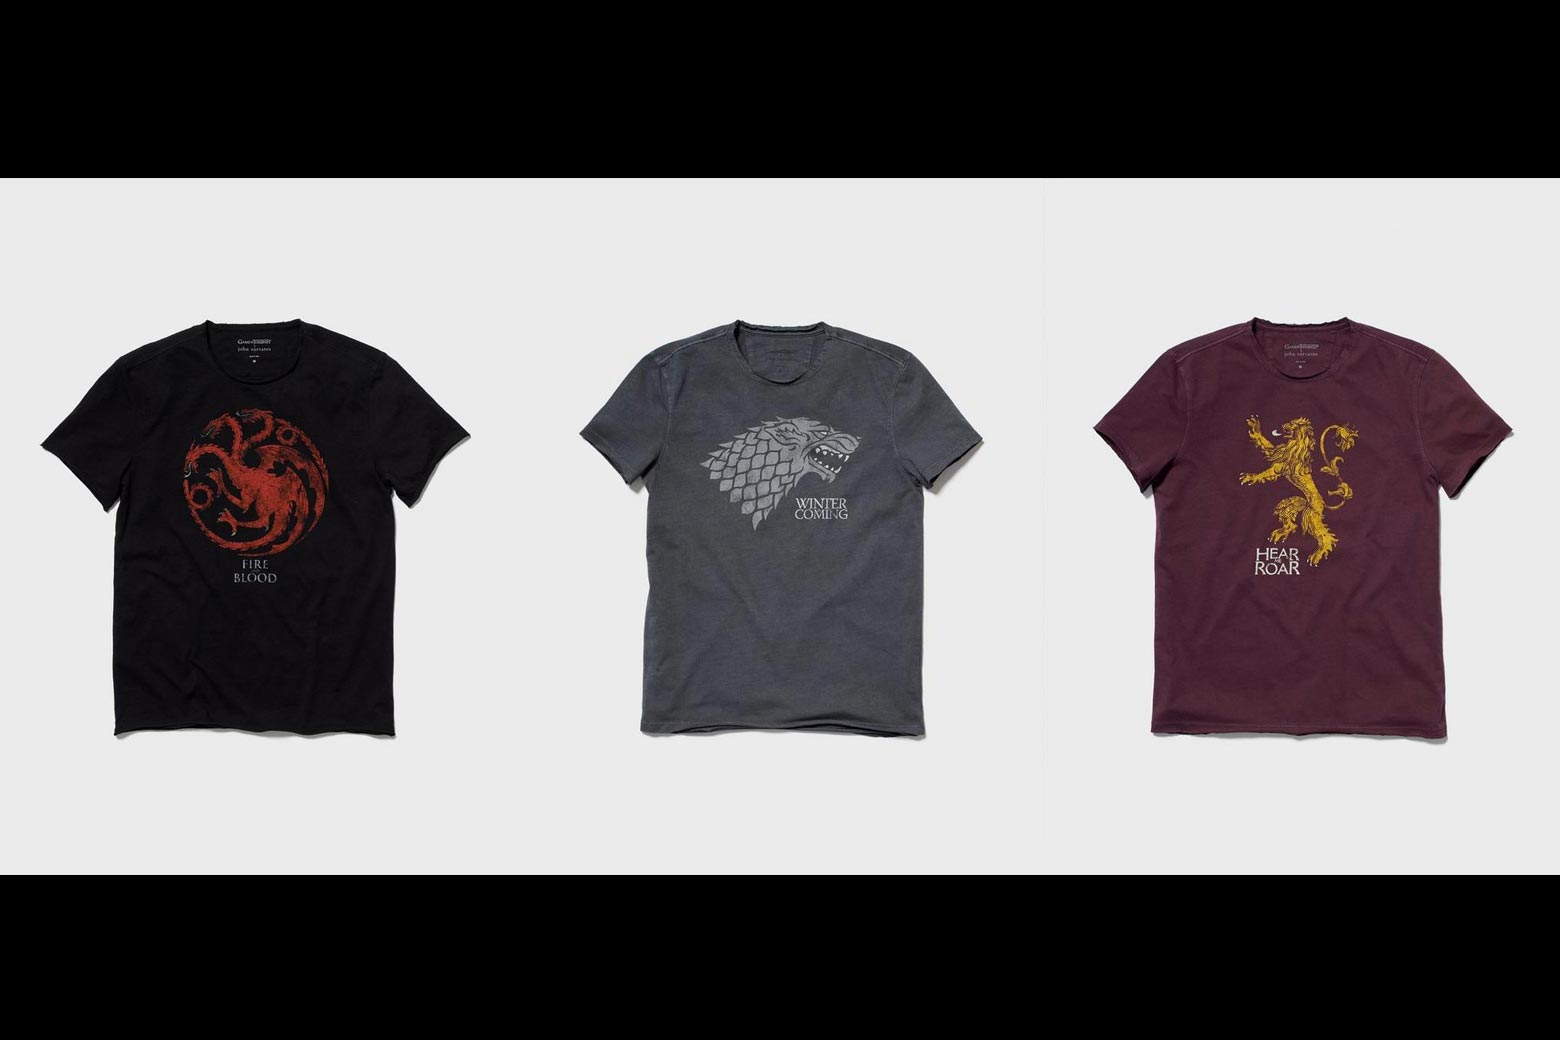 John Varvatos' Game of Thrones-branded T-shirts. Only $98!